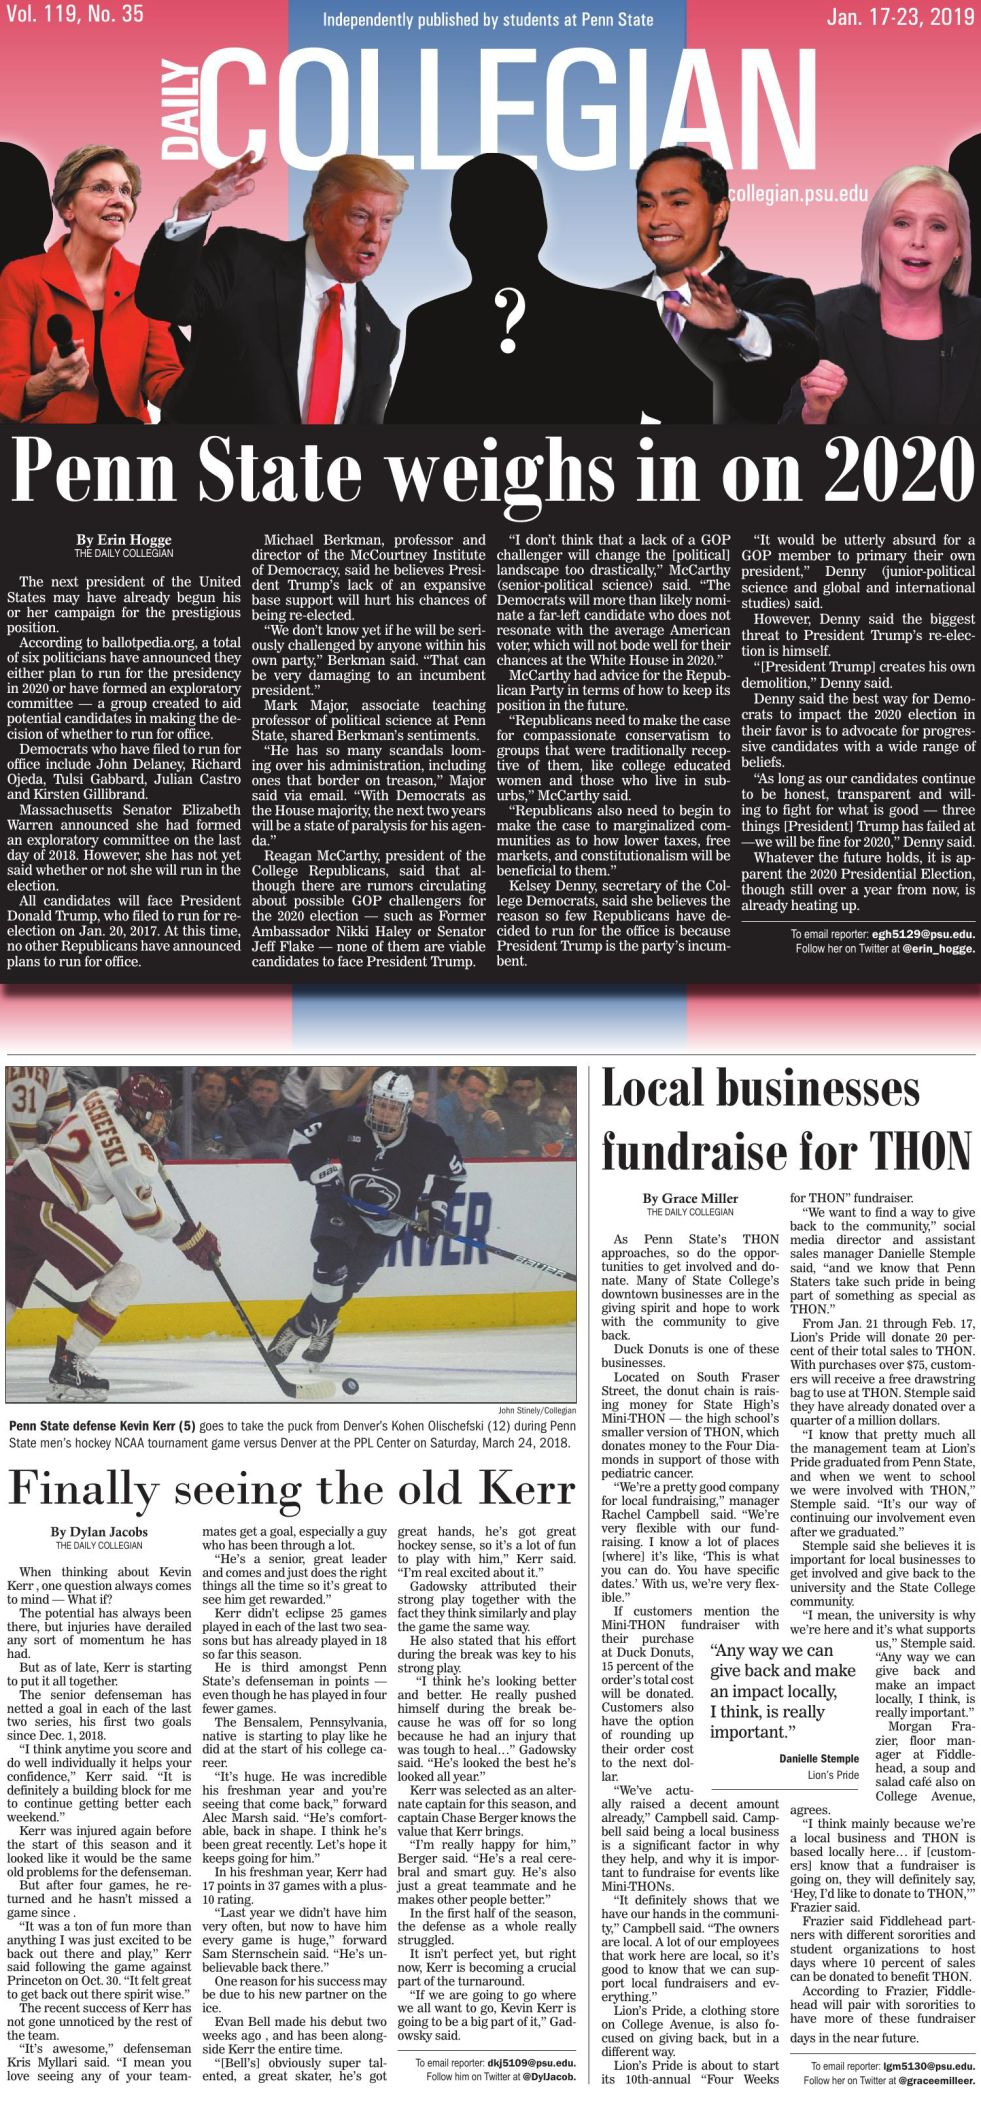 The Daily Collegian for Jan. 17, 2019